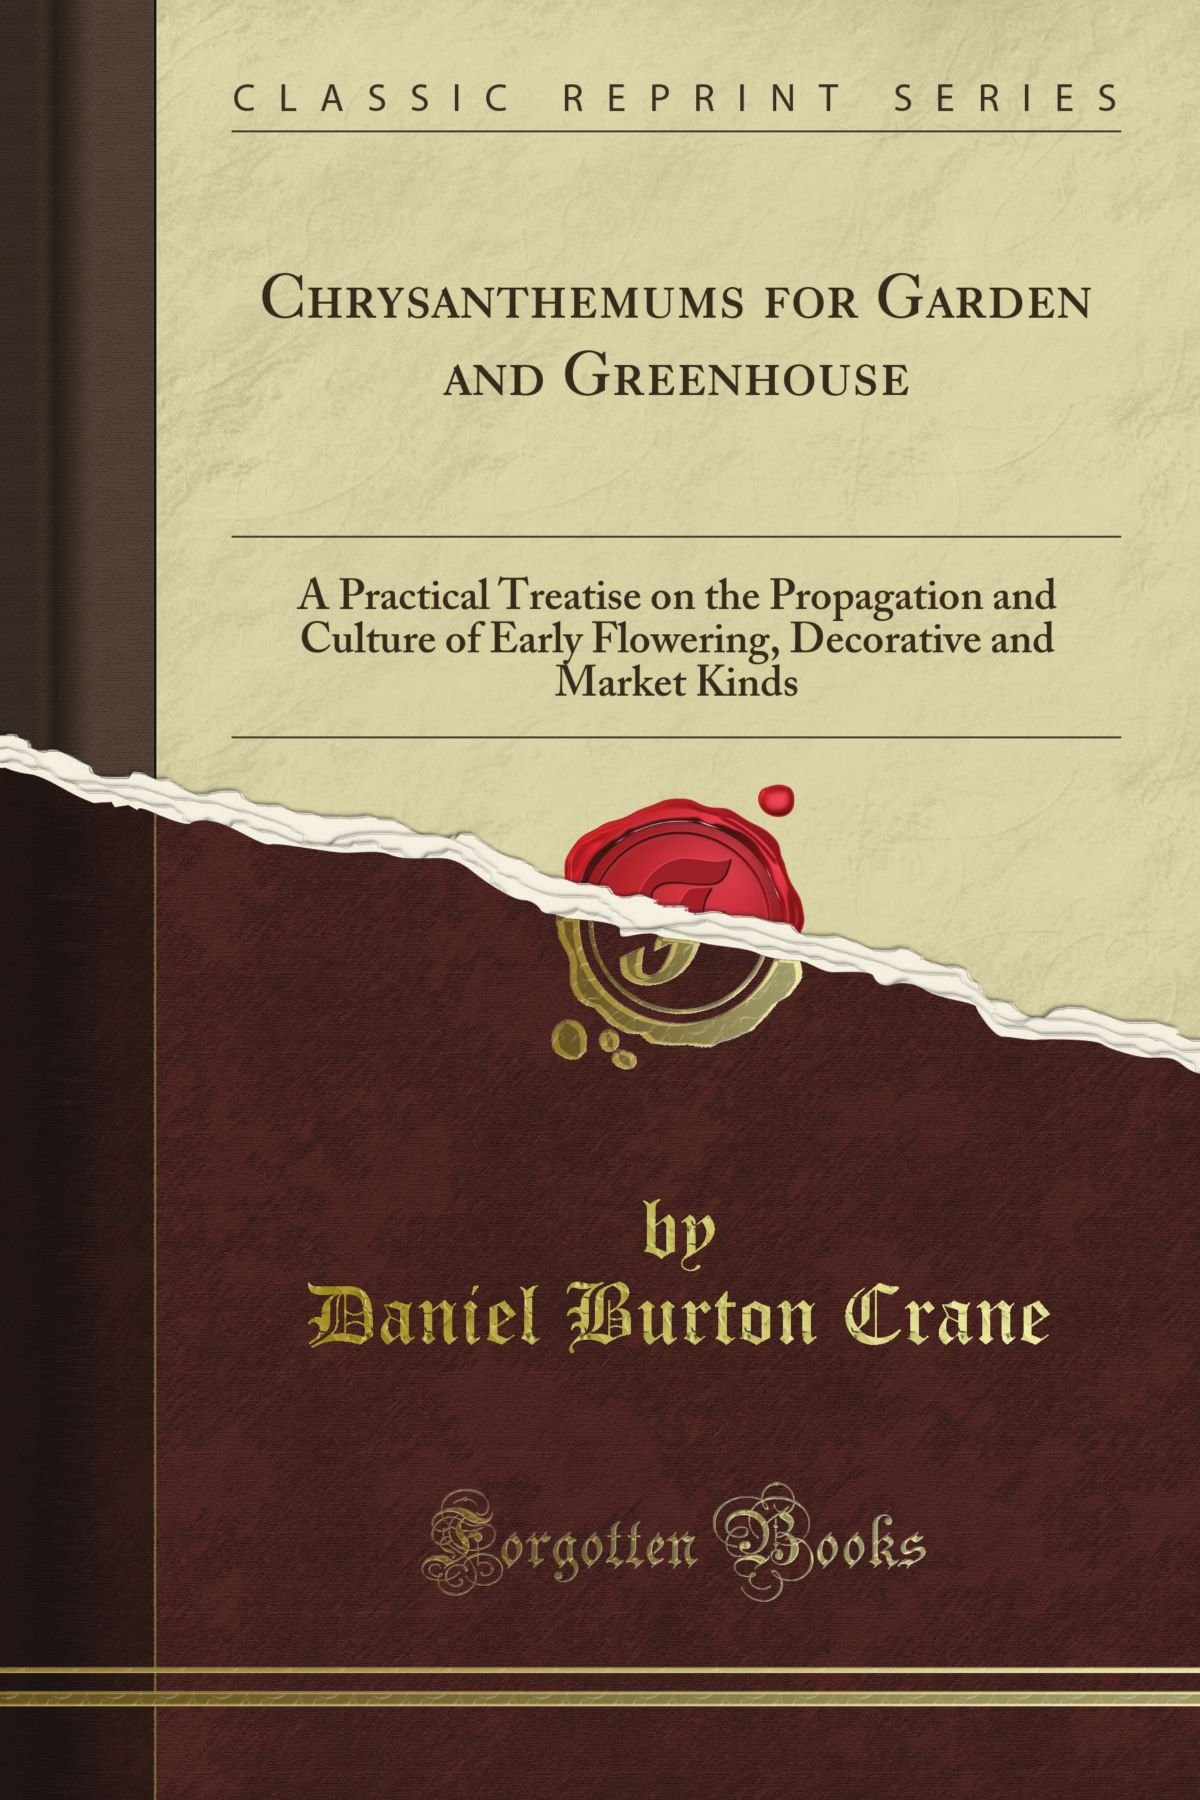 Chrysanthemums for Garden and Greenhouse: A Practical Treatise on the Propagation and Culture of Early Flowering, Decorative and Market Kinds (Classic Reprint)